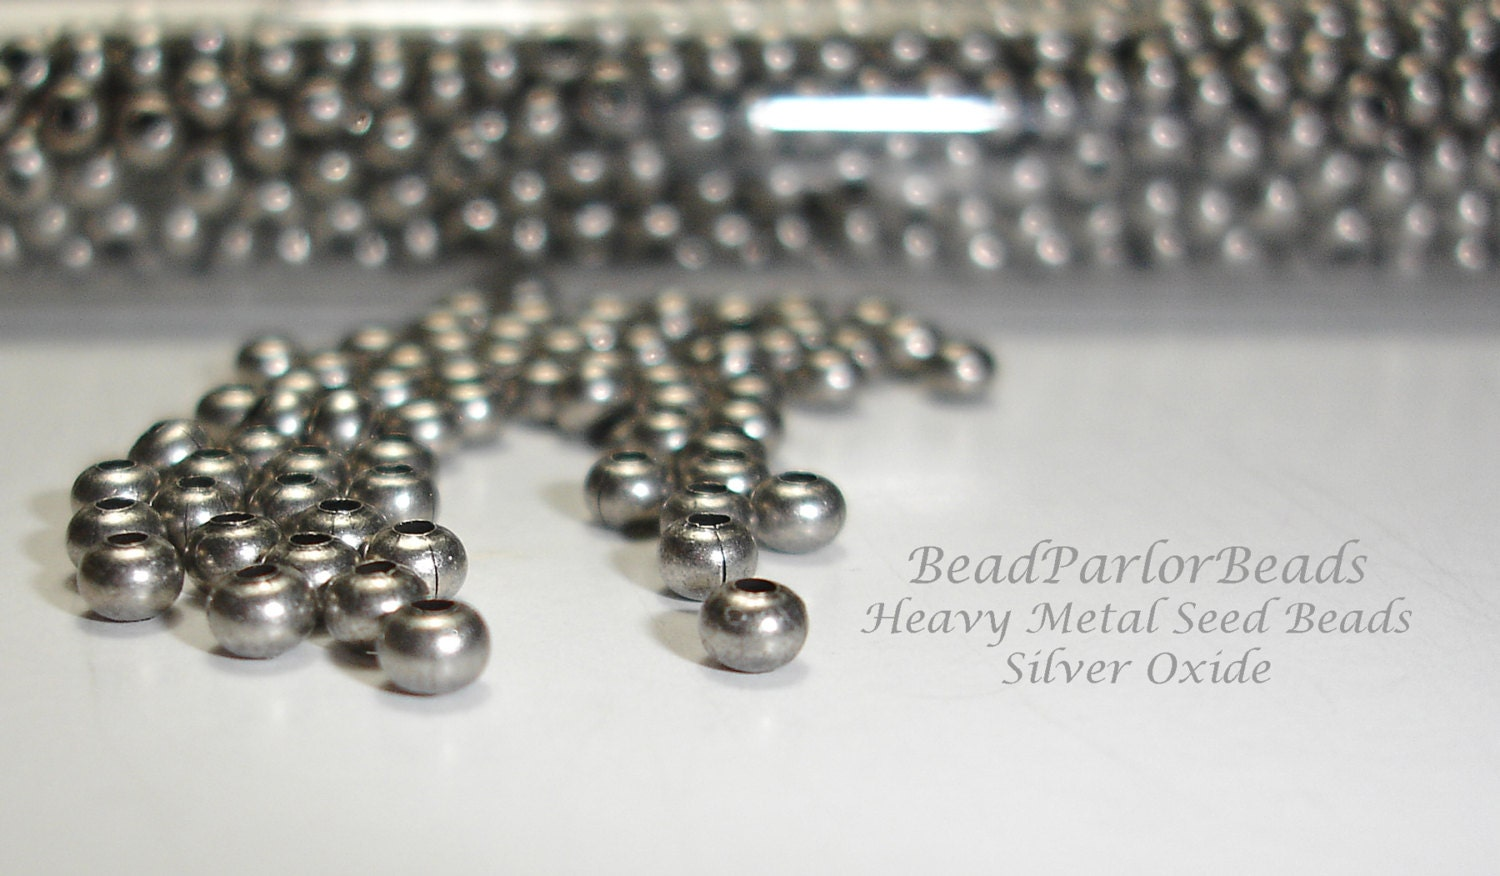 Silver oxide plated metal seed beads size 8 0 by beadparlorbeads